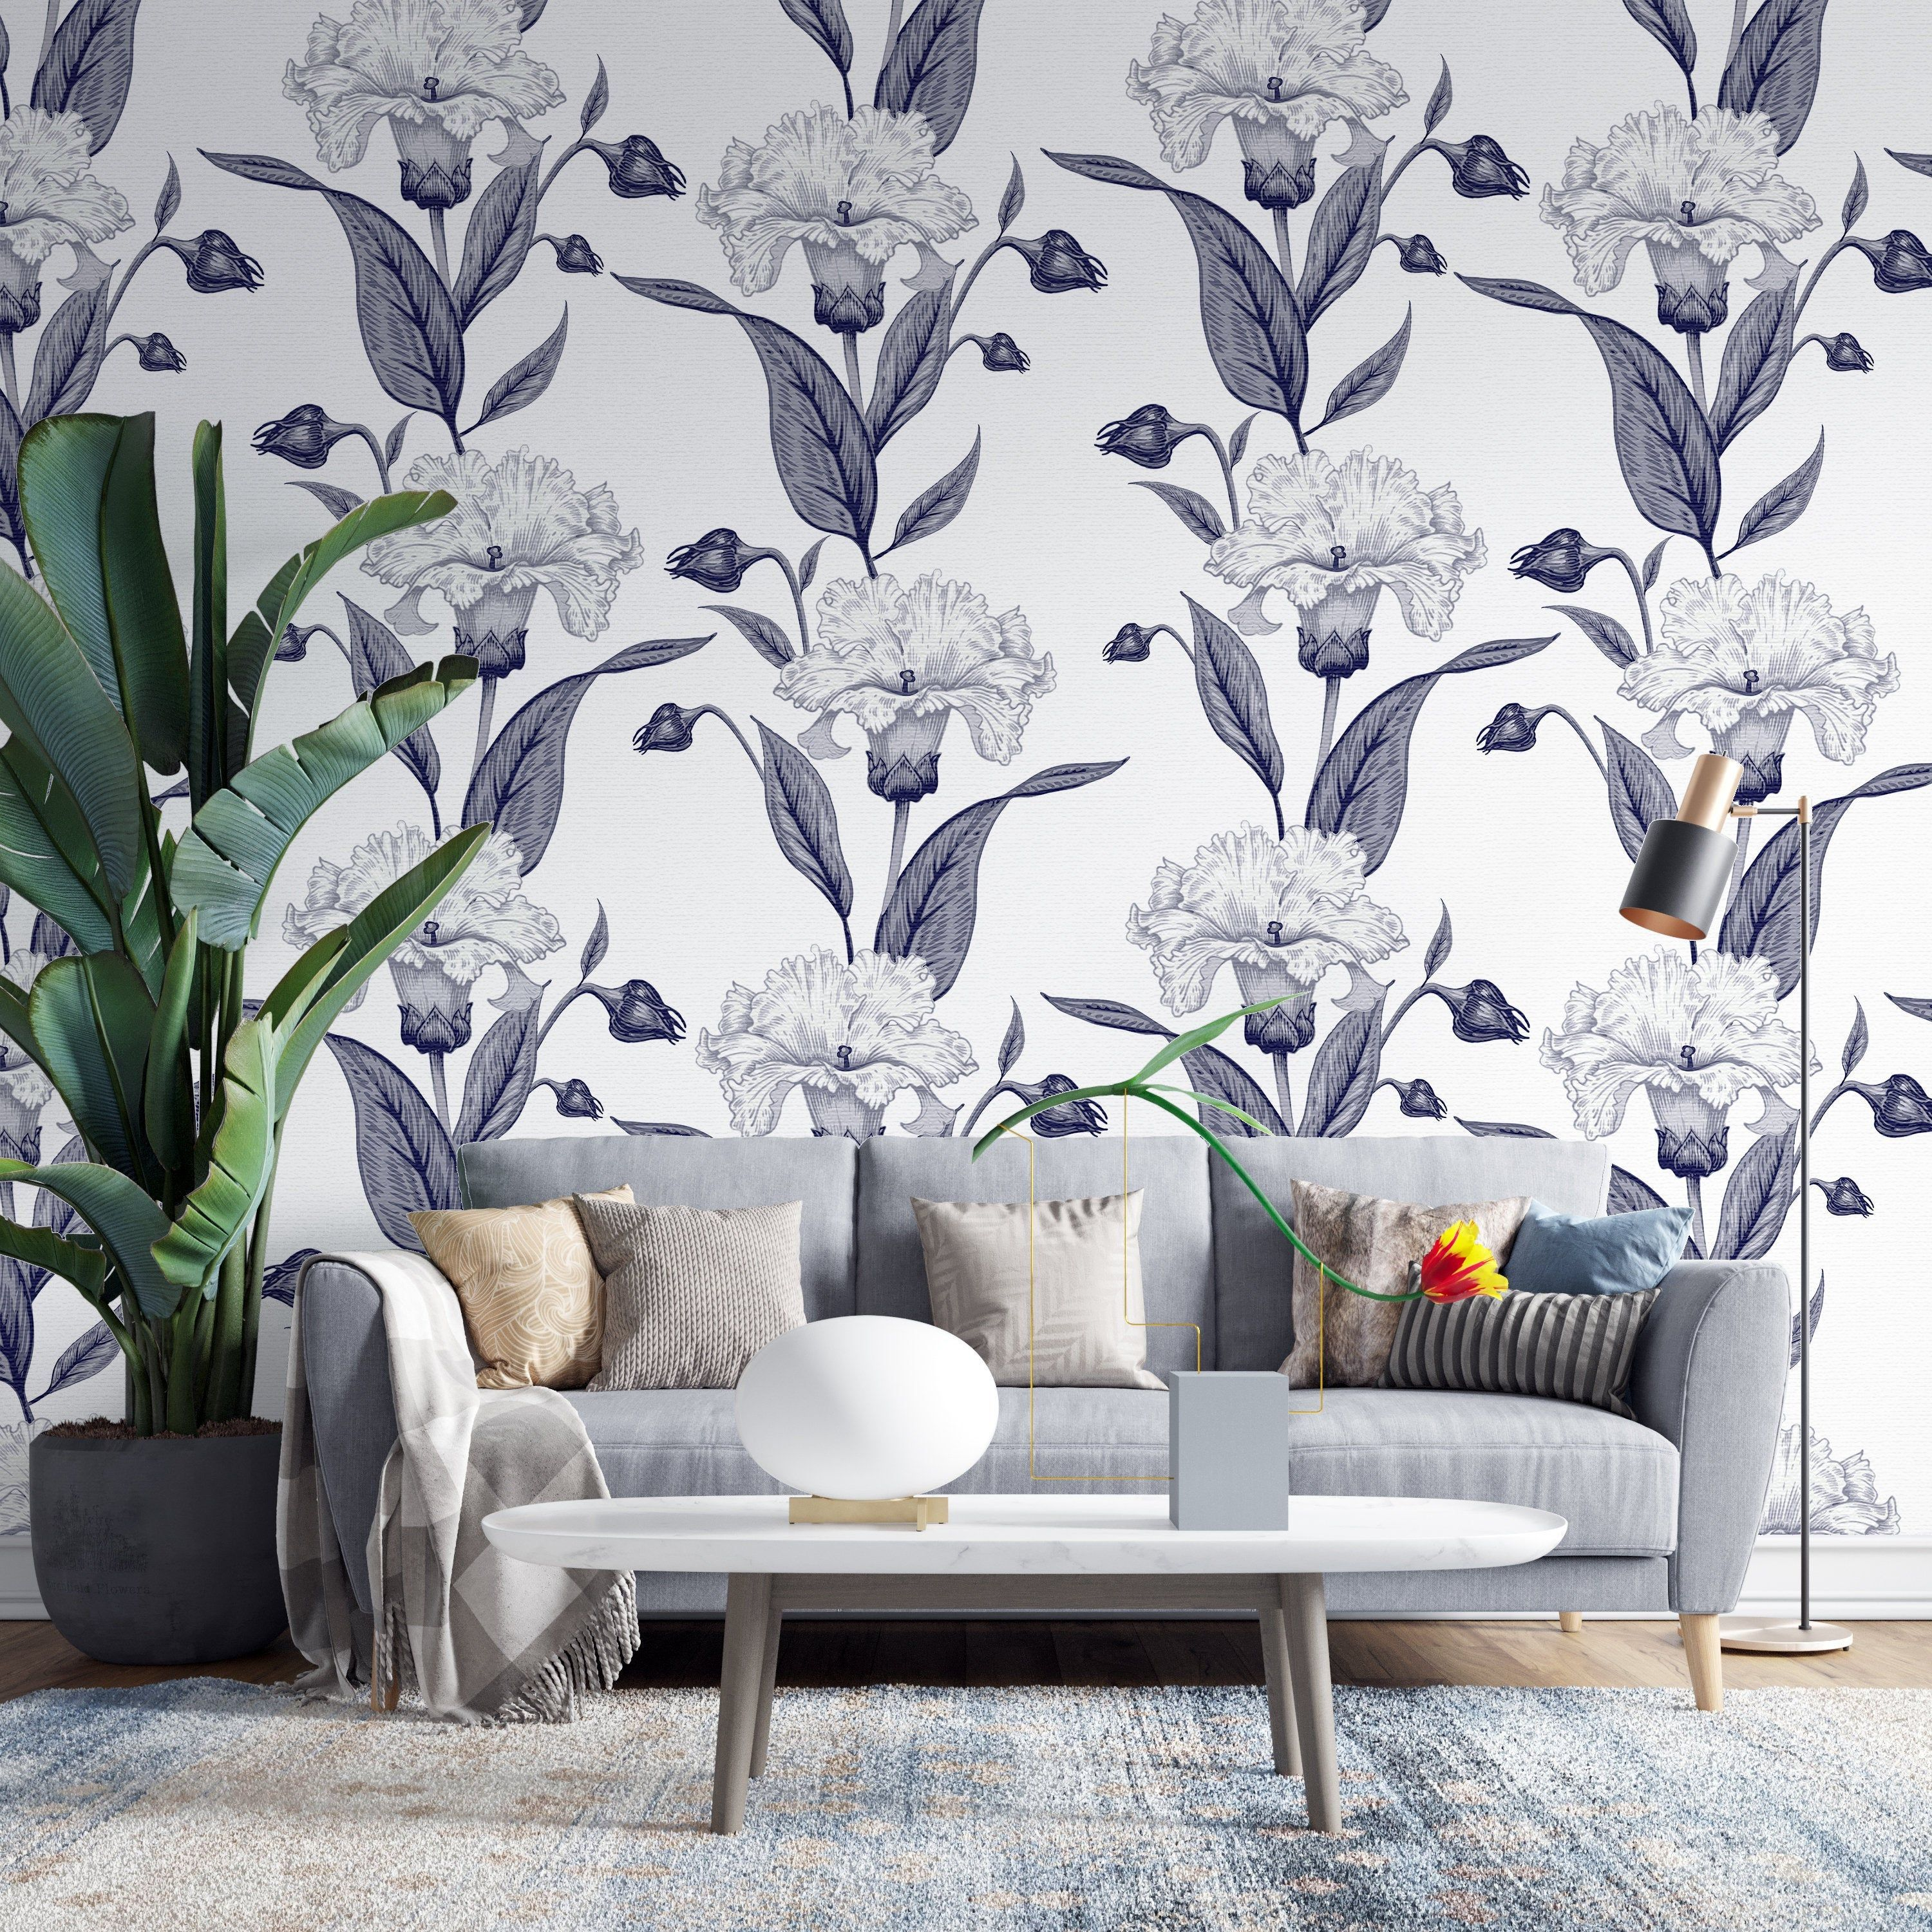 Removable Wallpaper Seamless Black Floral, Peel and Stick